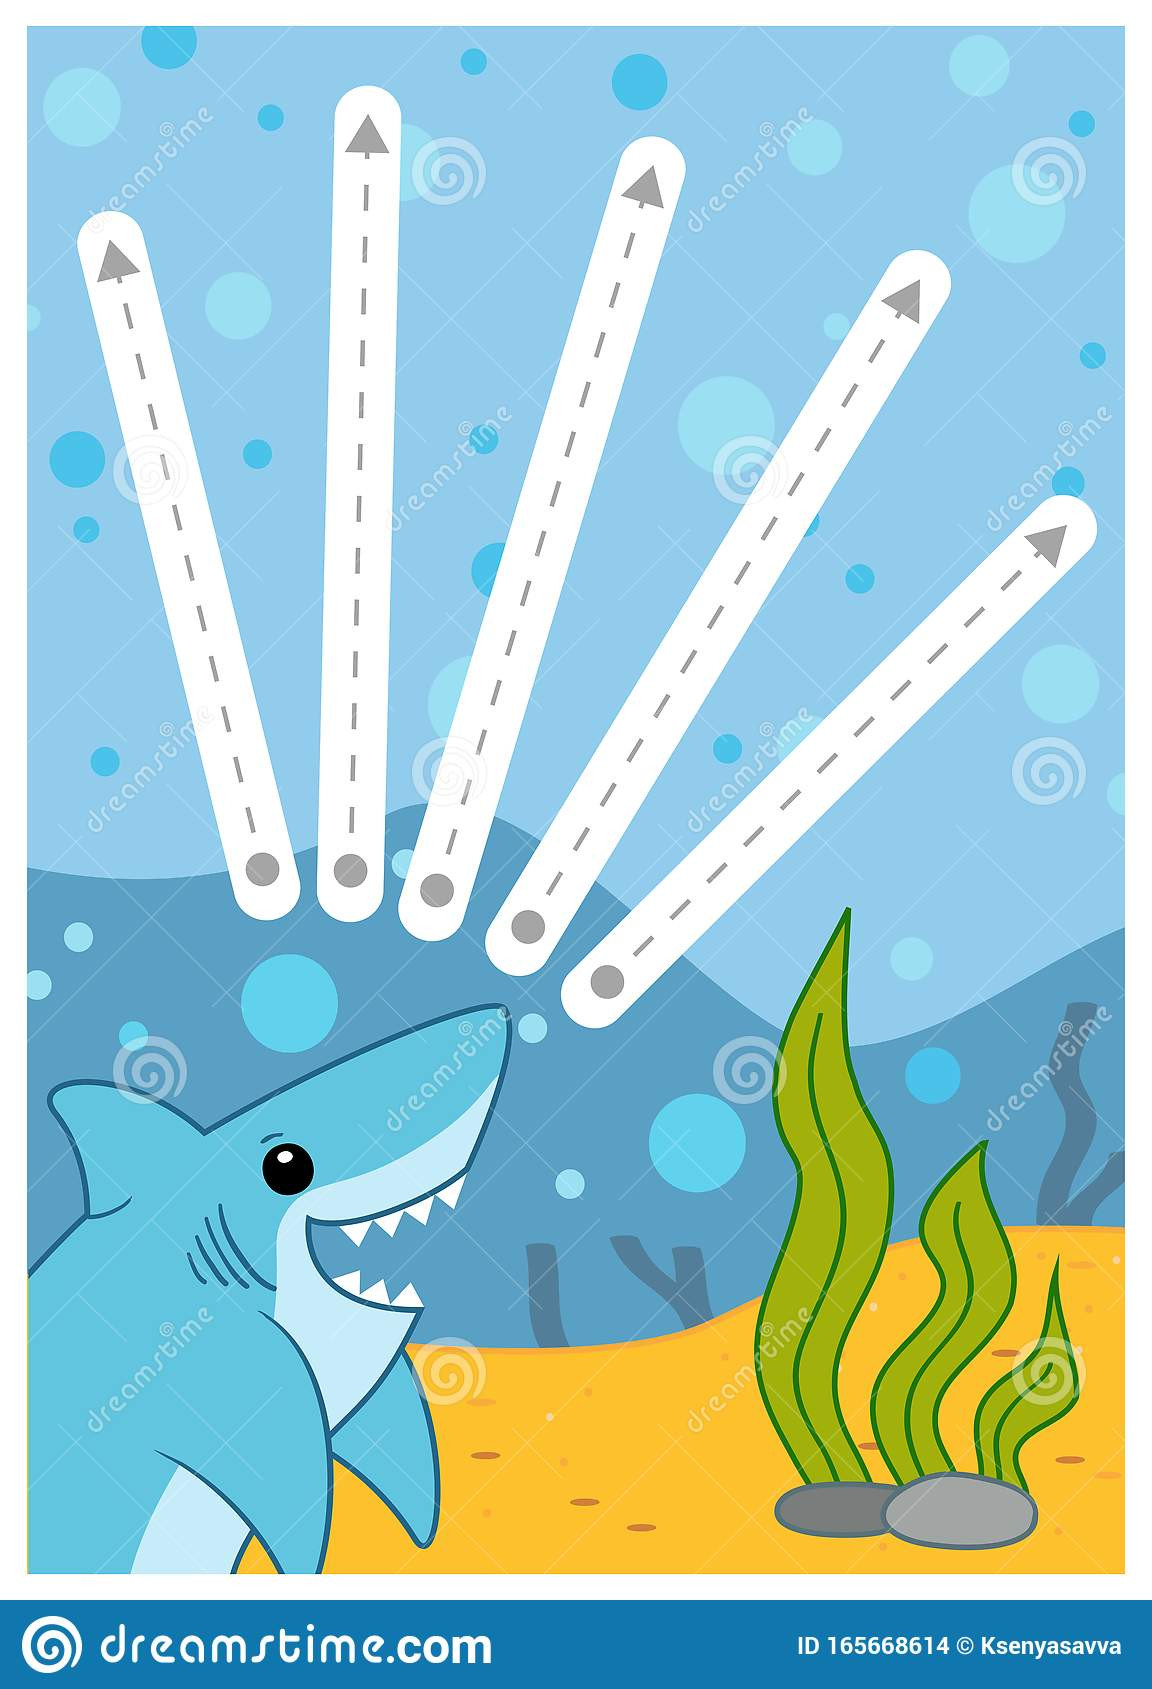 Ocean Floor Worksheets 5th Grade Worksheet Ocean Floor and Fish